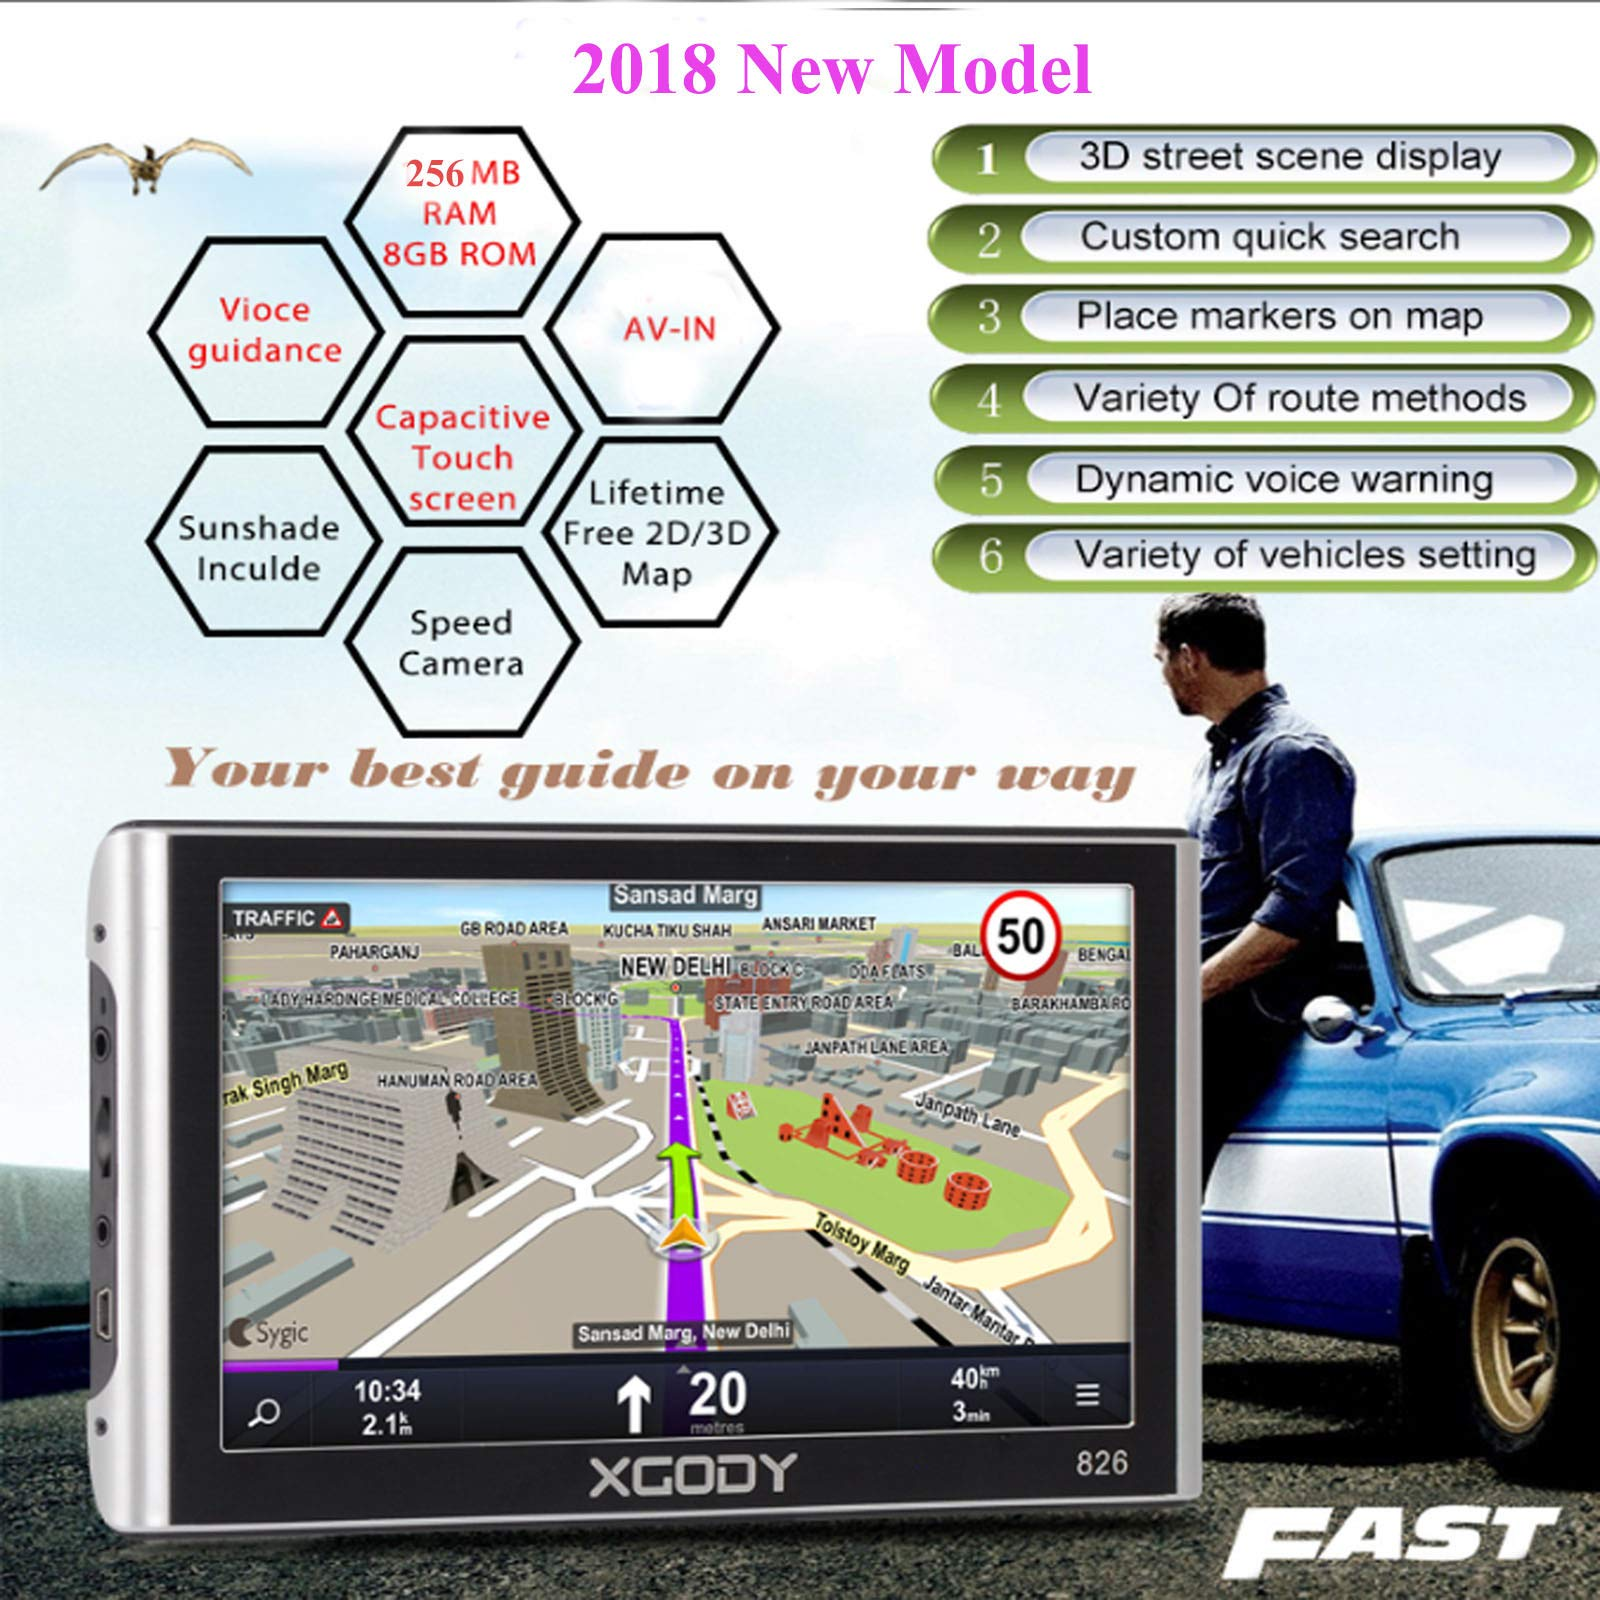 Xgody 826BT Car GPS Navigation with 6 Meters Backup Camera 7'' 256MB/8GB Sunshade Capacitive Touch Screen Trucking GPS NAV Lifetime Map Updates Speed Limit Displays Spoken Turn-by-Turn Directions by XGODY (Image #4)